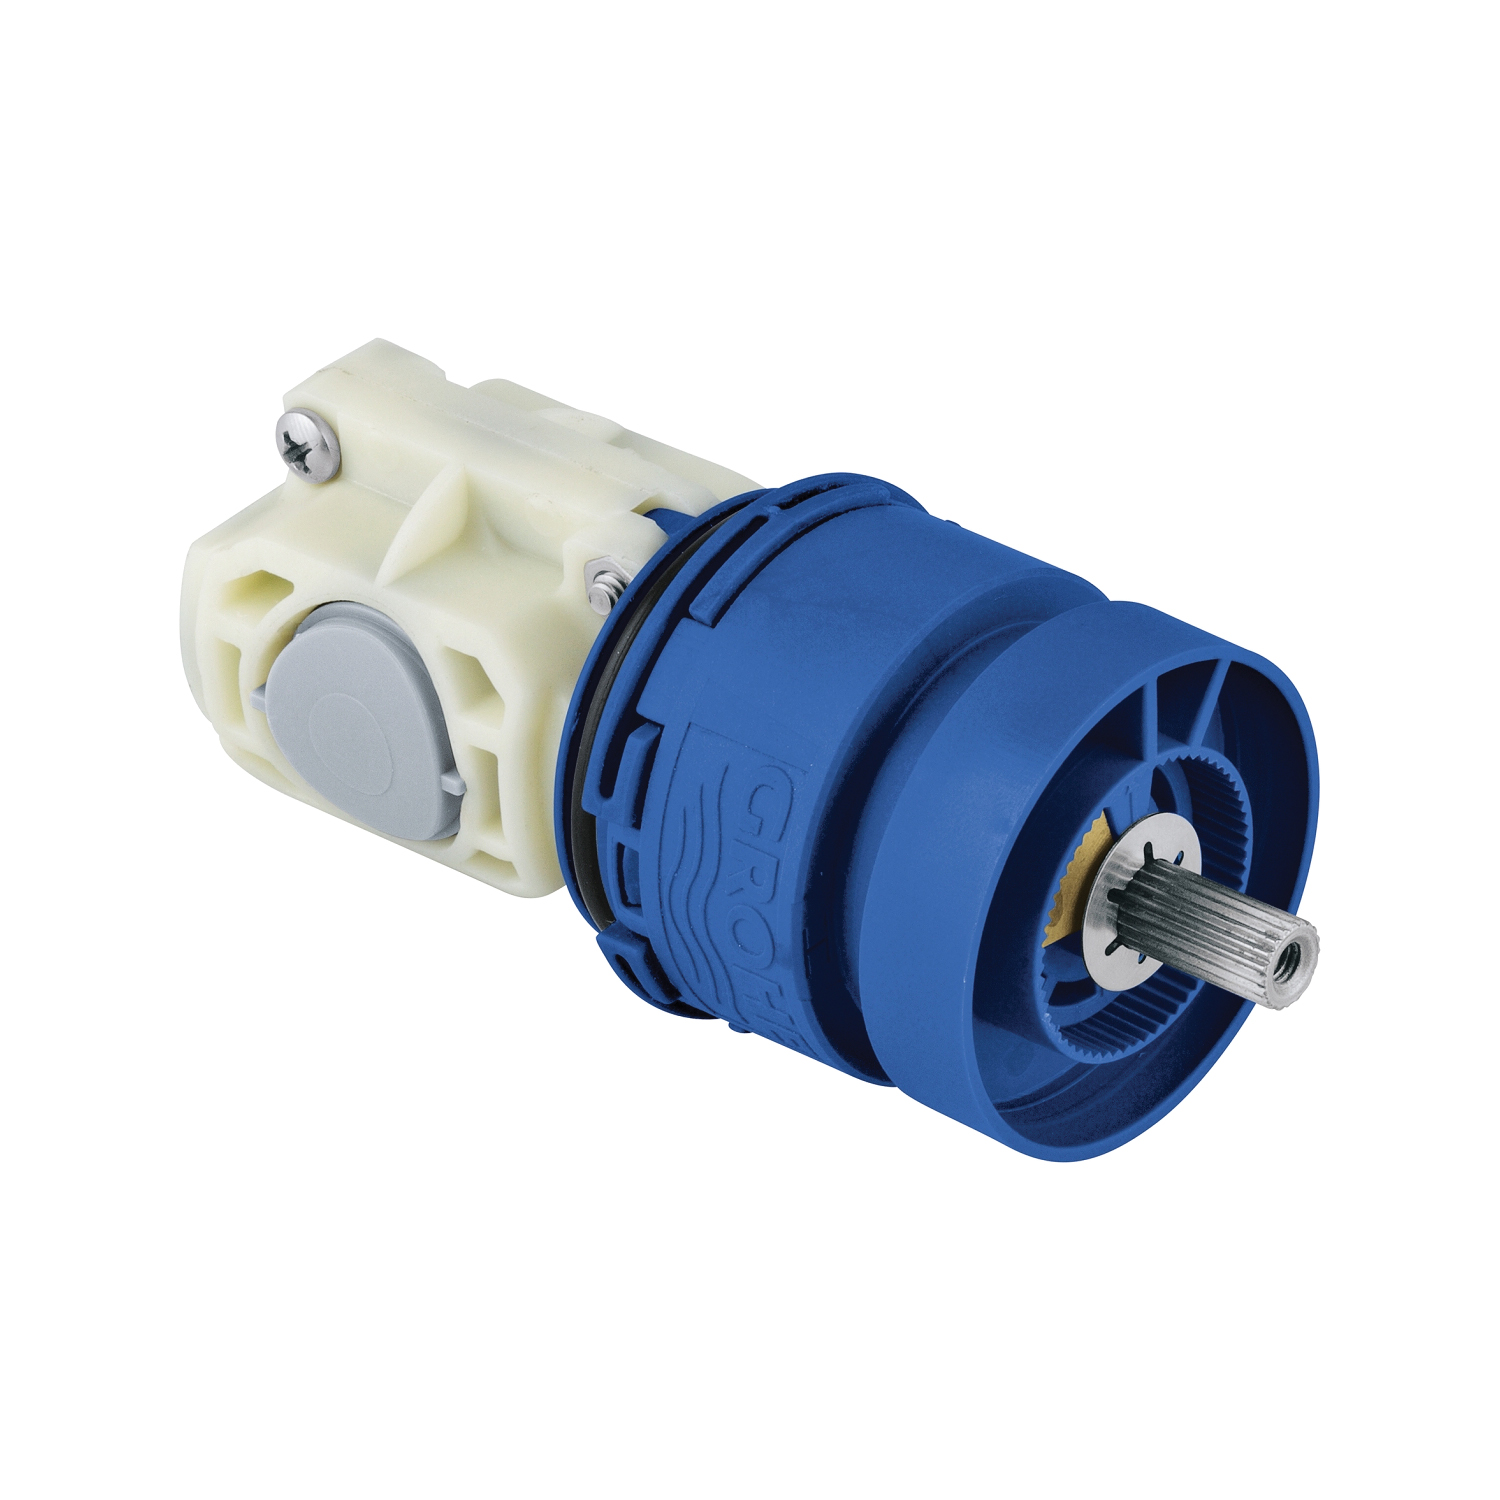 GROHE 47995000 Cartridge, For Use With: Model 35 015 001/35 016 001/35 065 001/35 066 001 Pressure Balance Valve